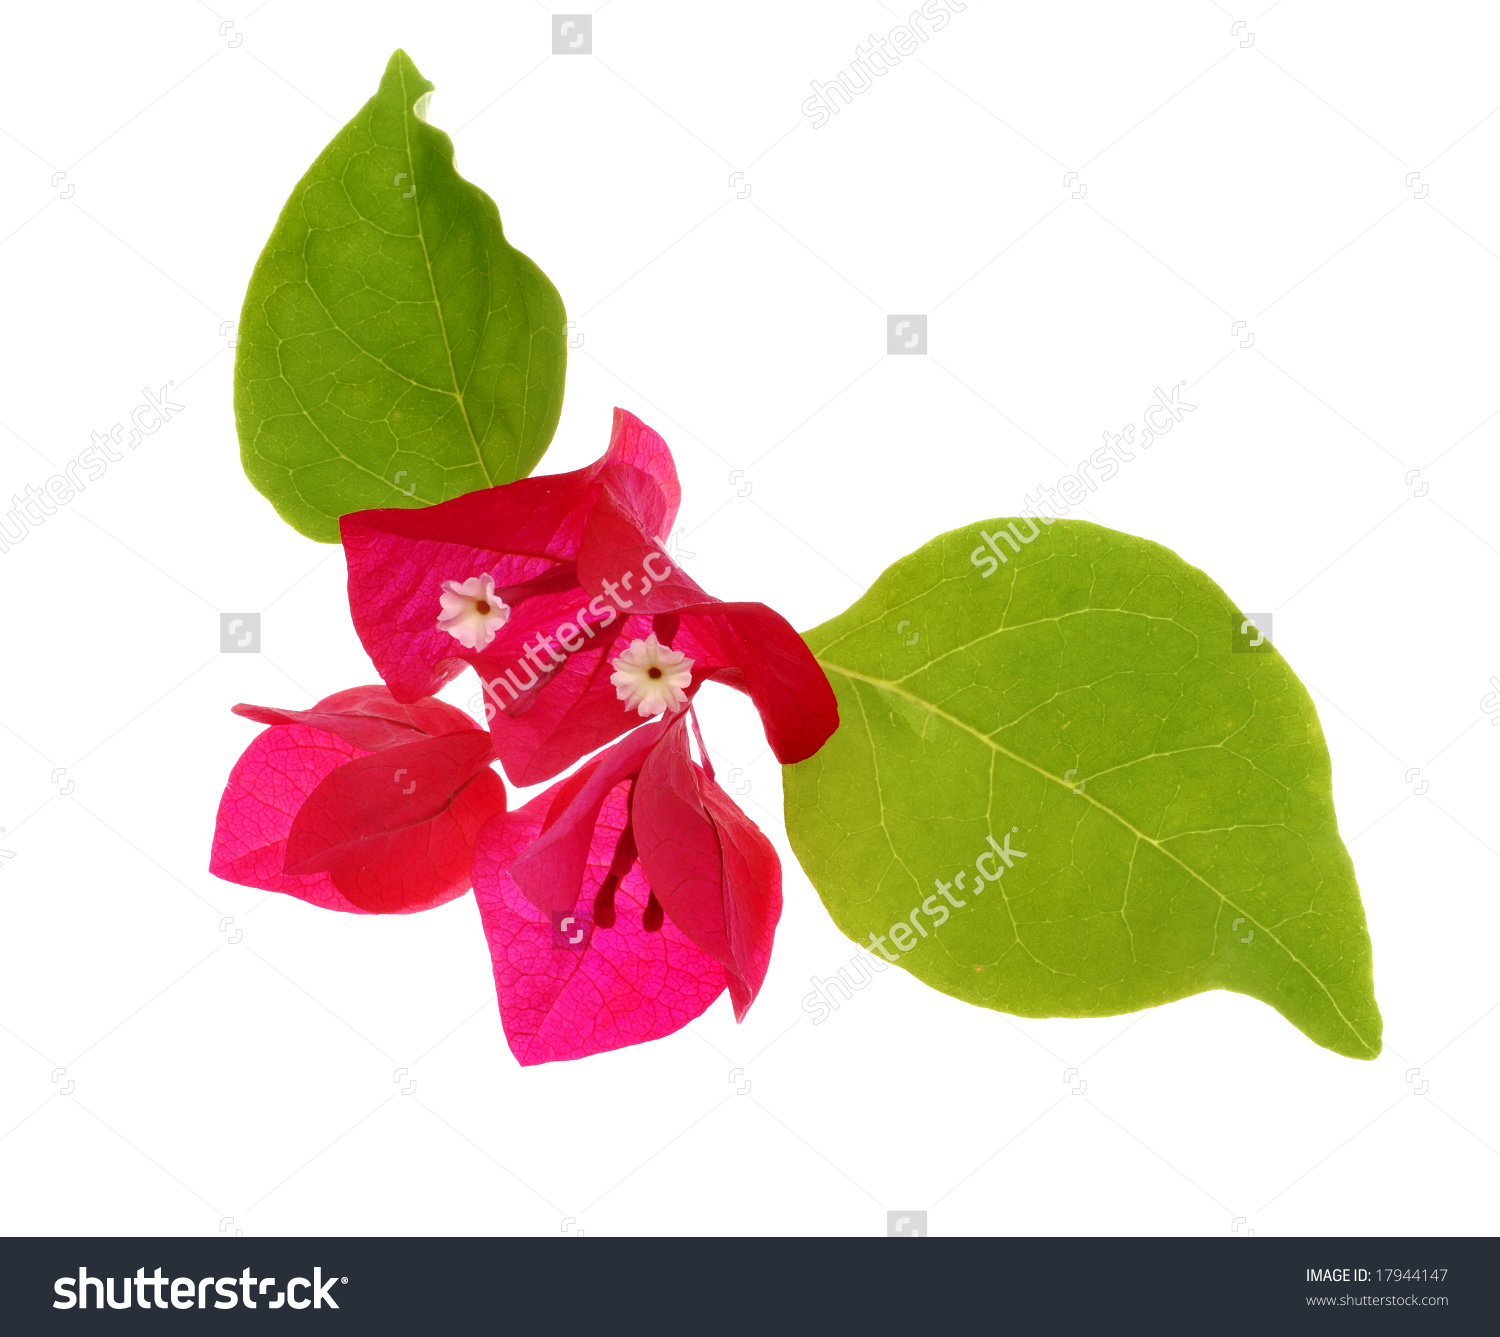 Bougainvillea Flower With Leaves Stock Photo 17944147 : Shutterstock.